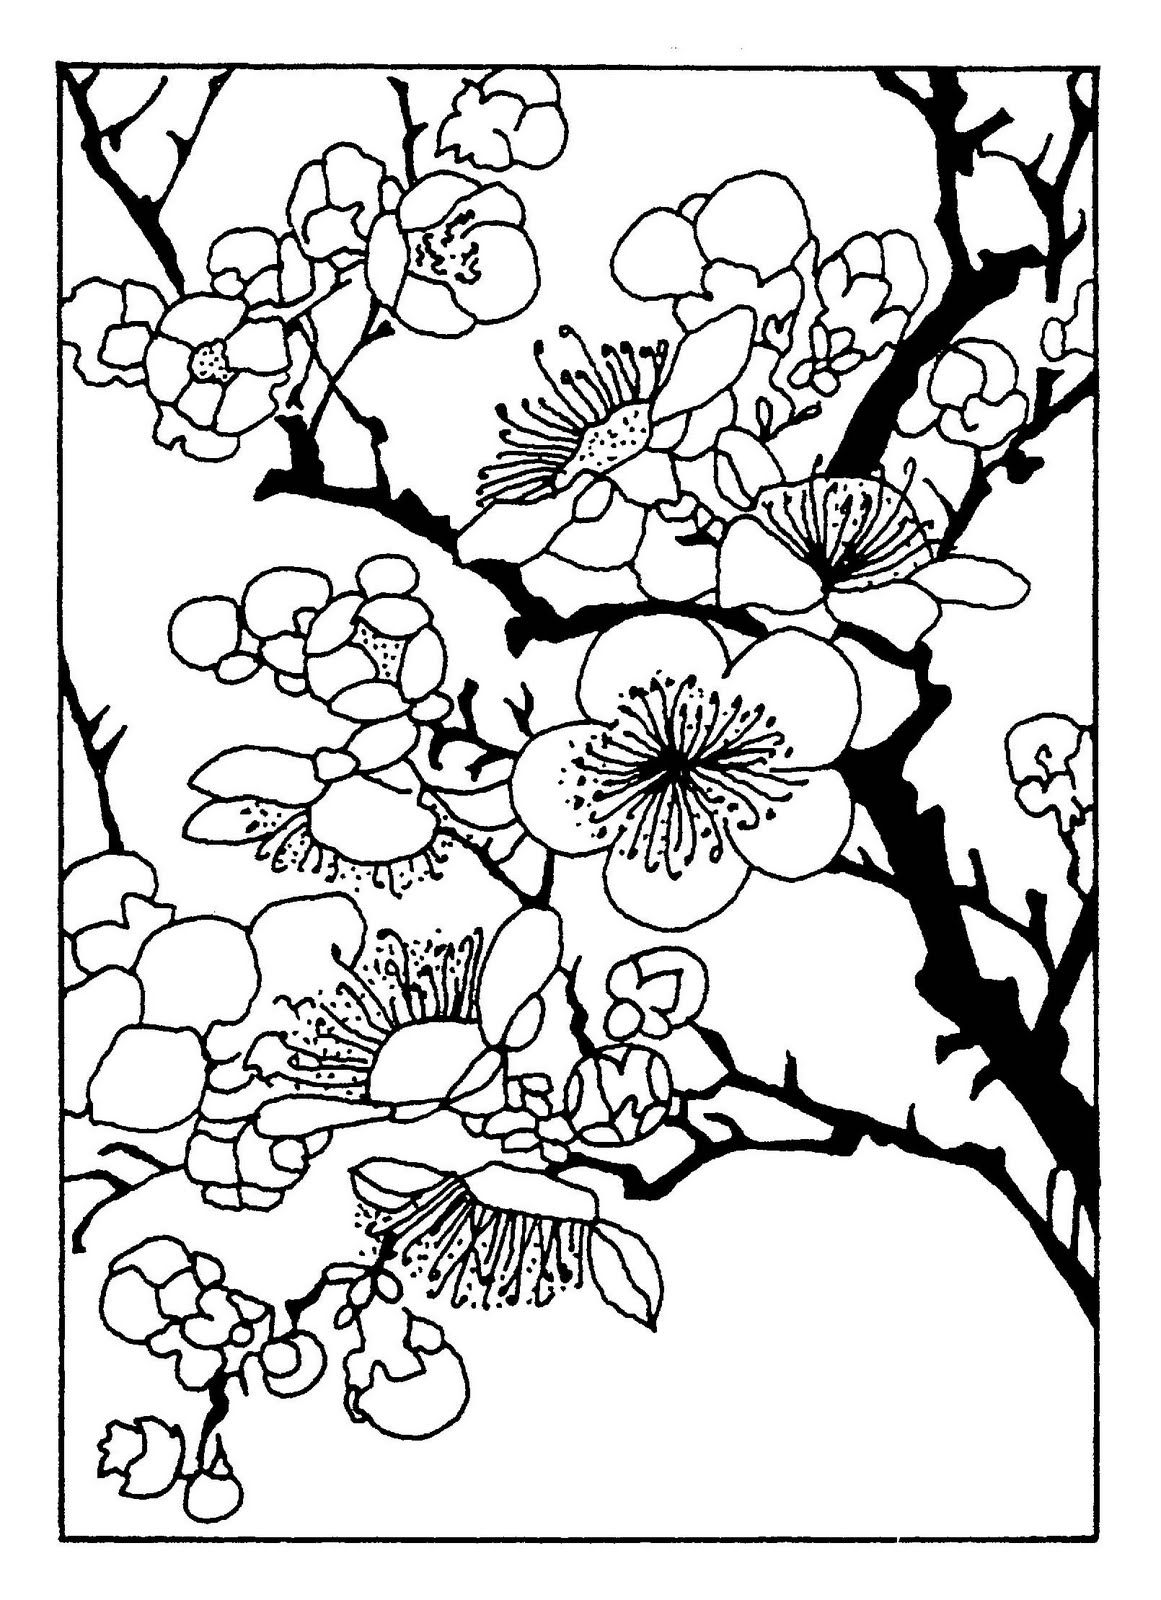 angels dover designs for coloring - Pesquisa do Google | FLORES ...